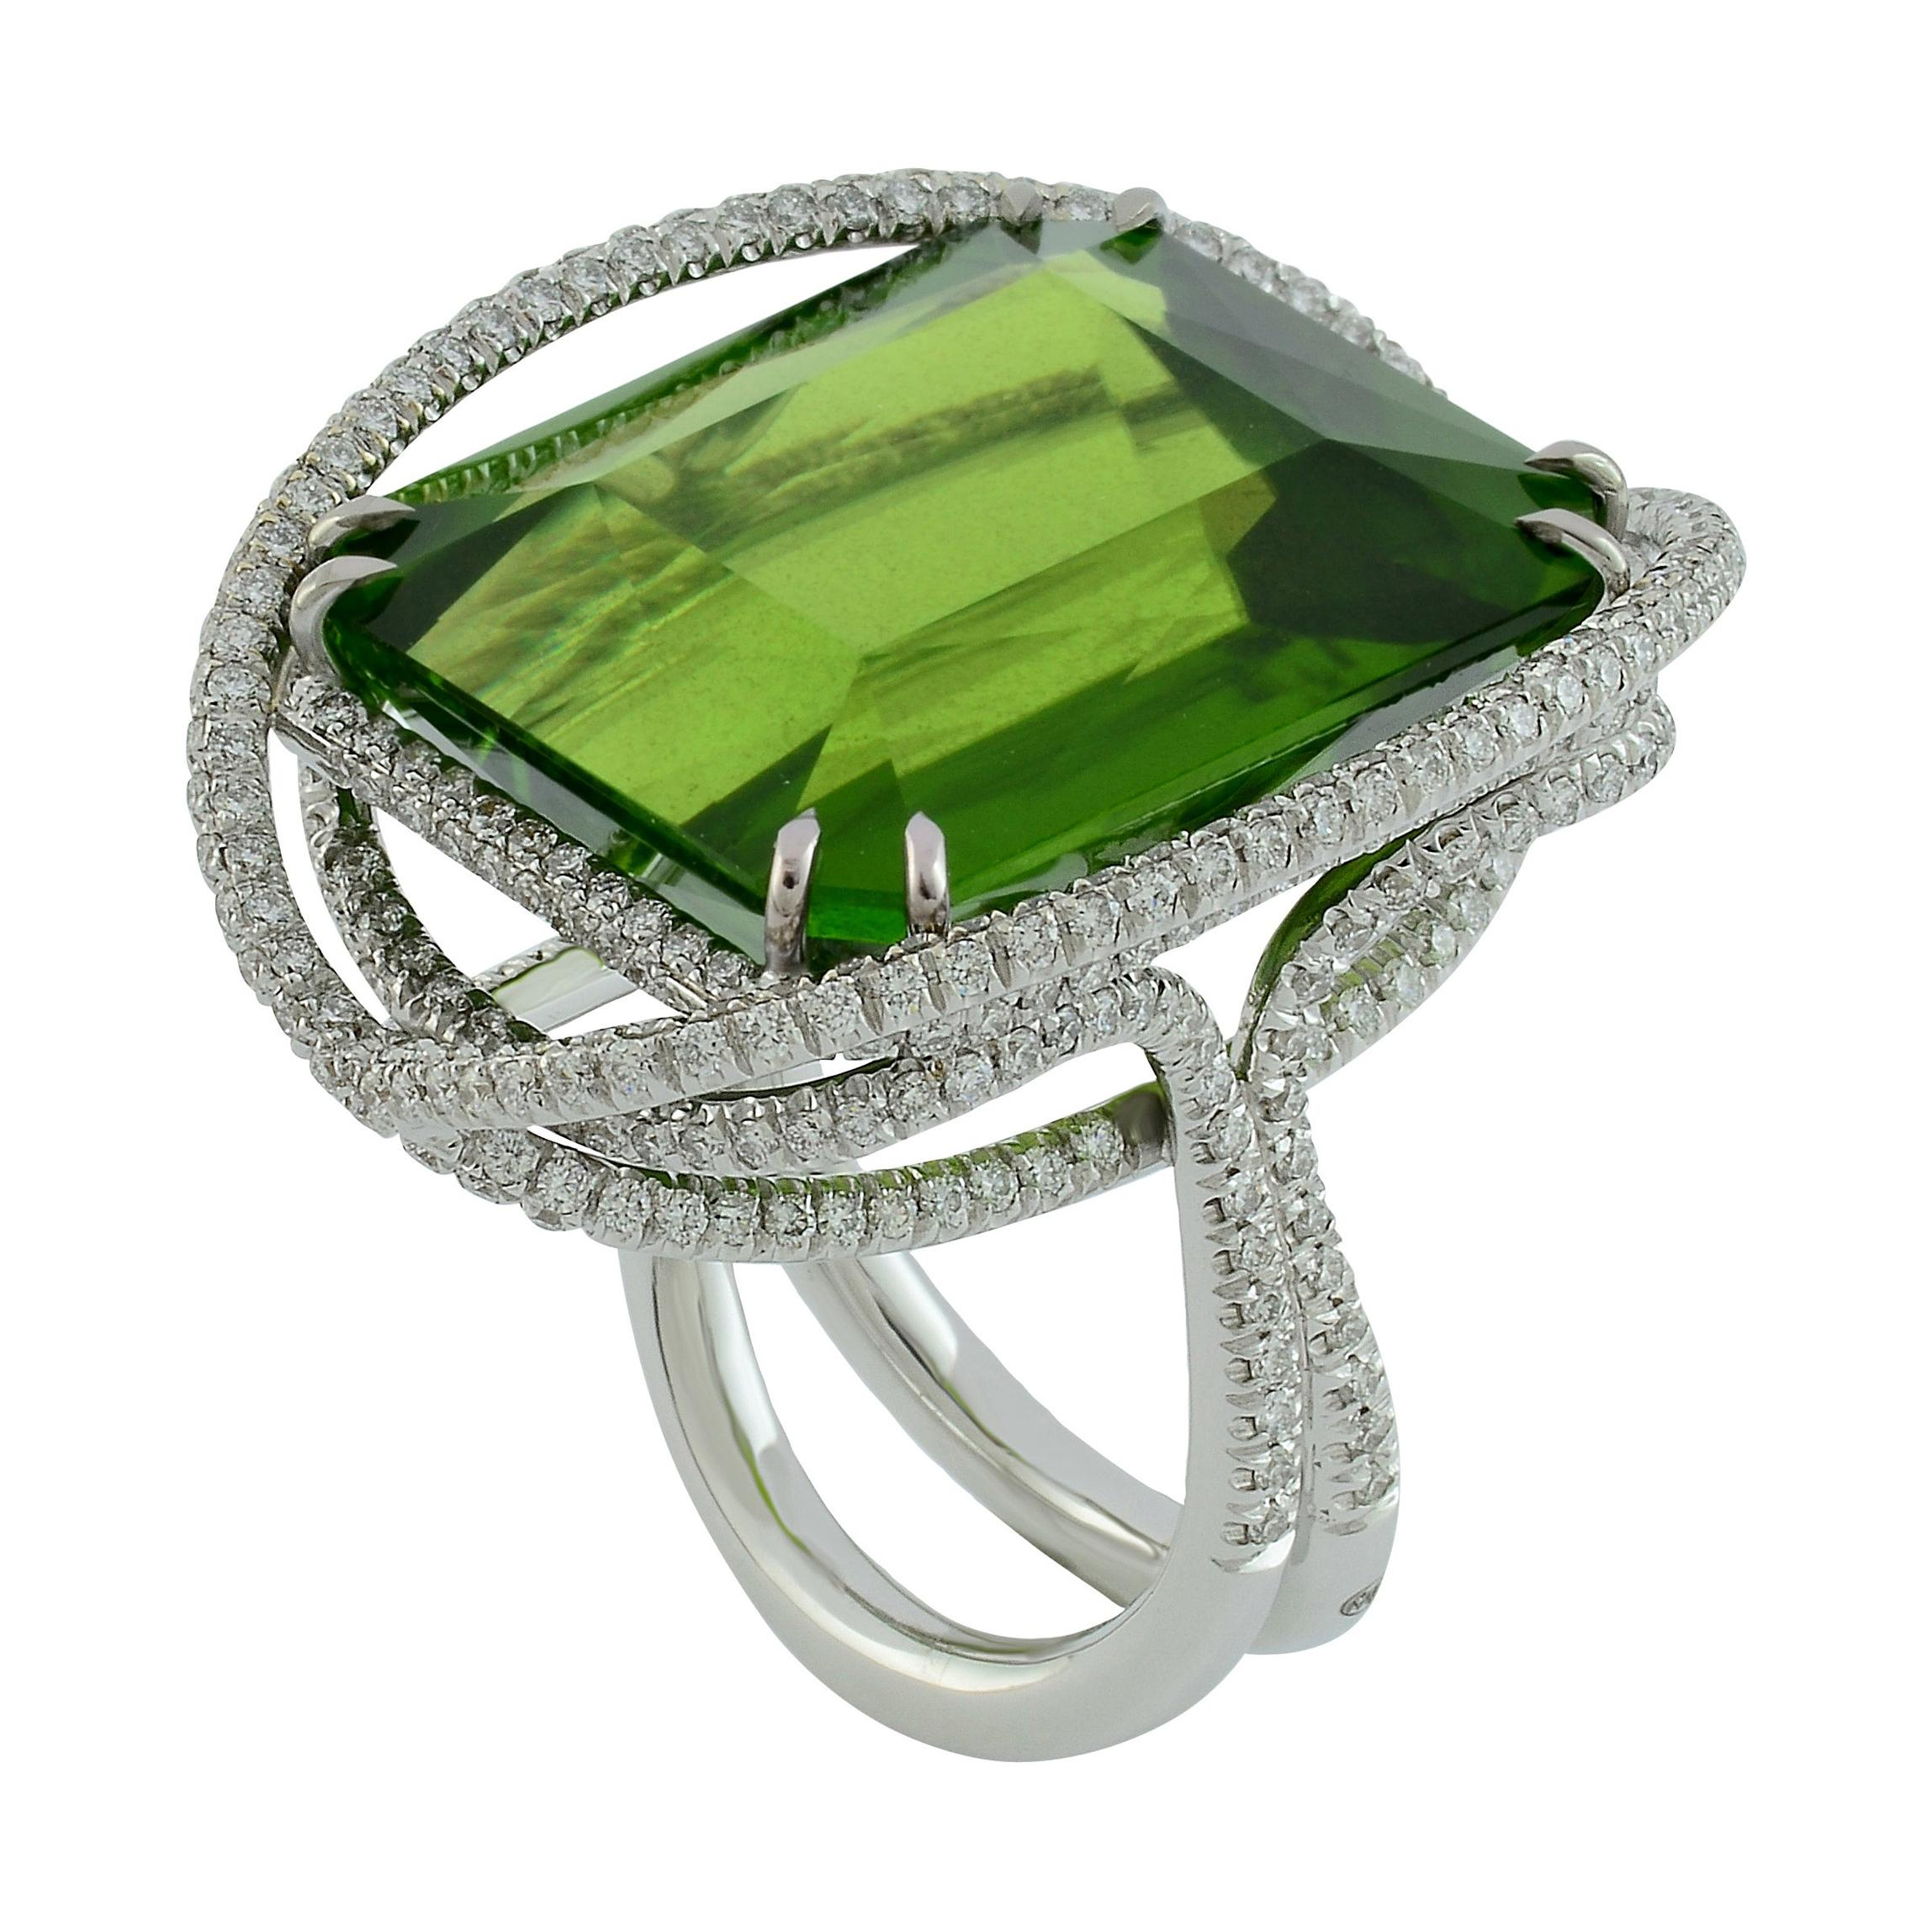 PERIDOT 53.50 CT Diamonds 18 KT White Gold Made in Italy Ring